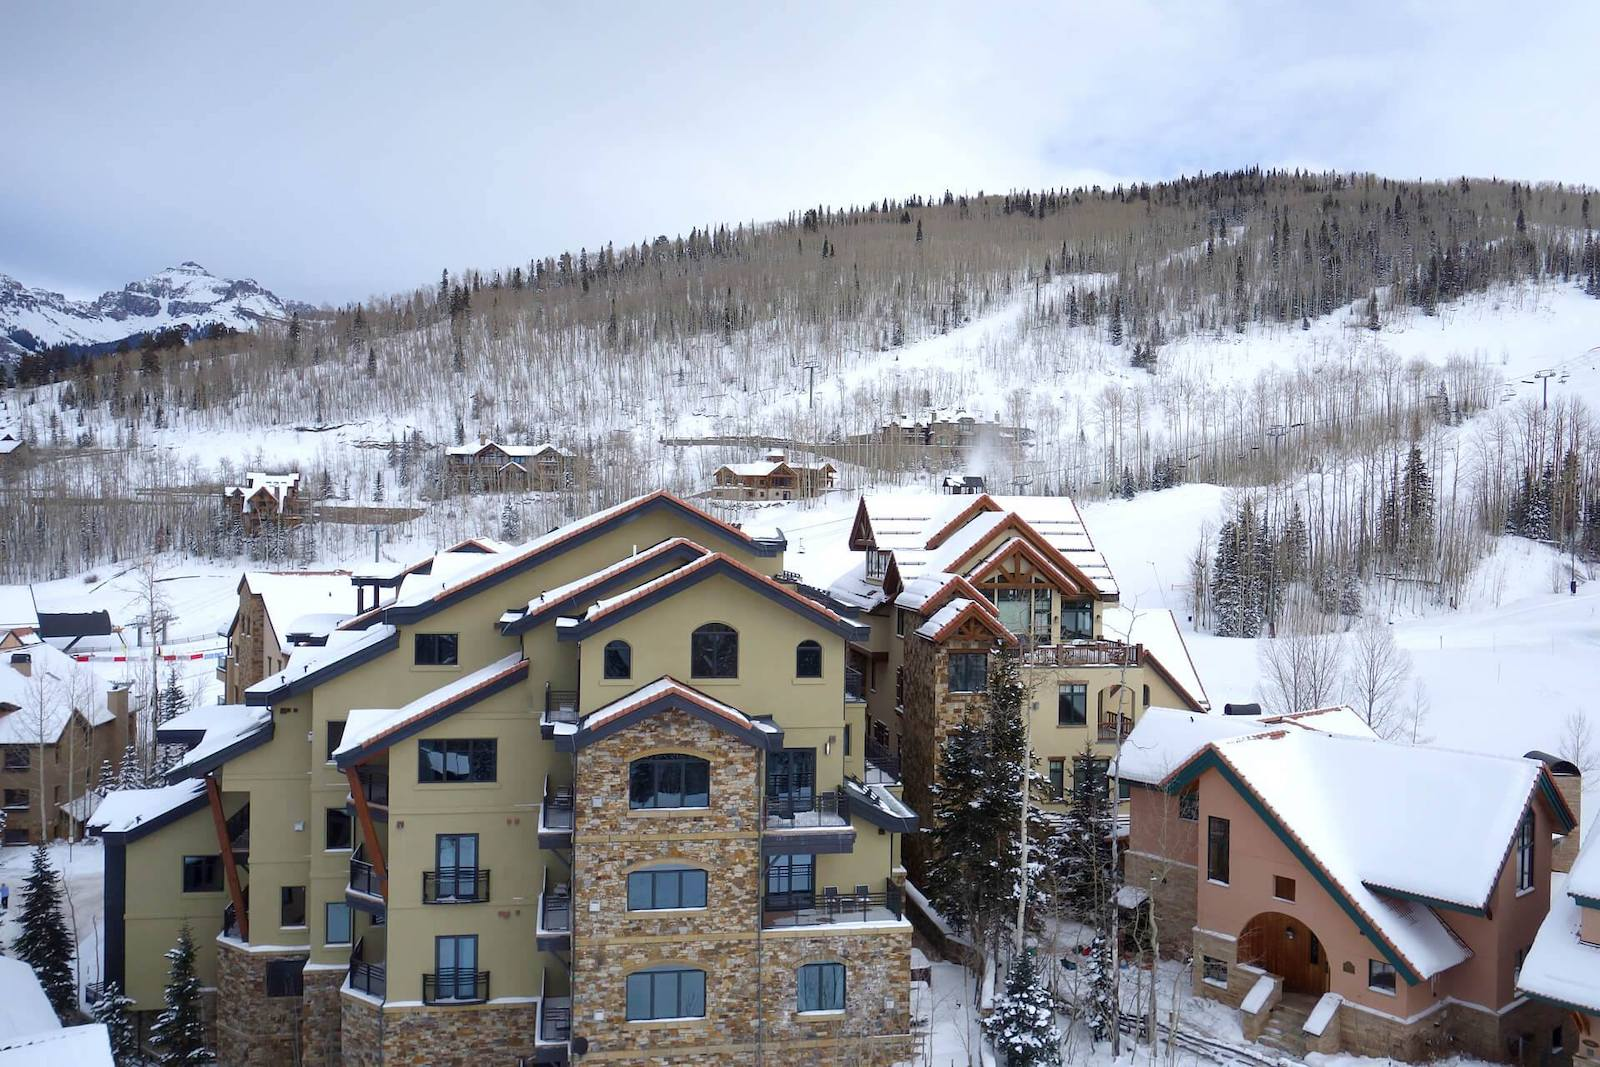 Image of the slopes behind the Lumiere in Telluride, Colorado